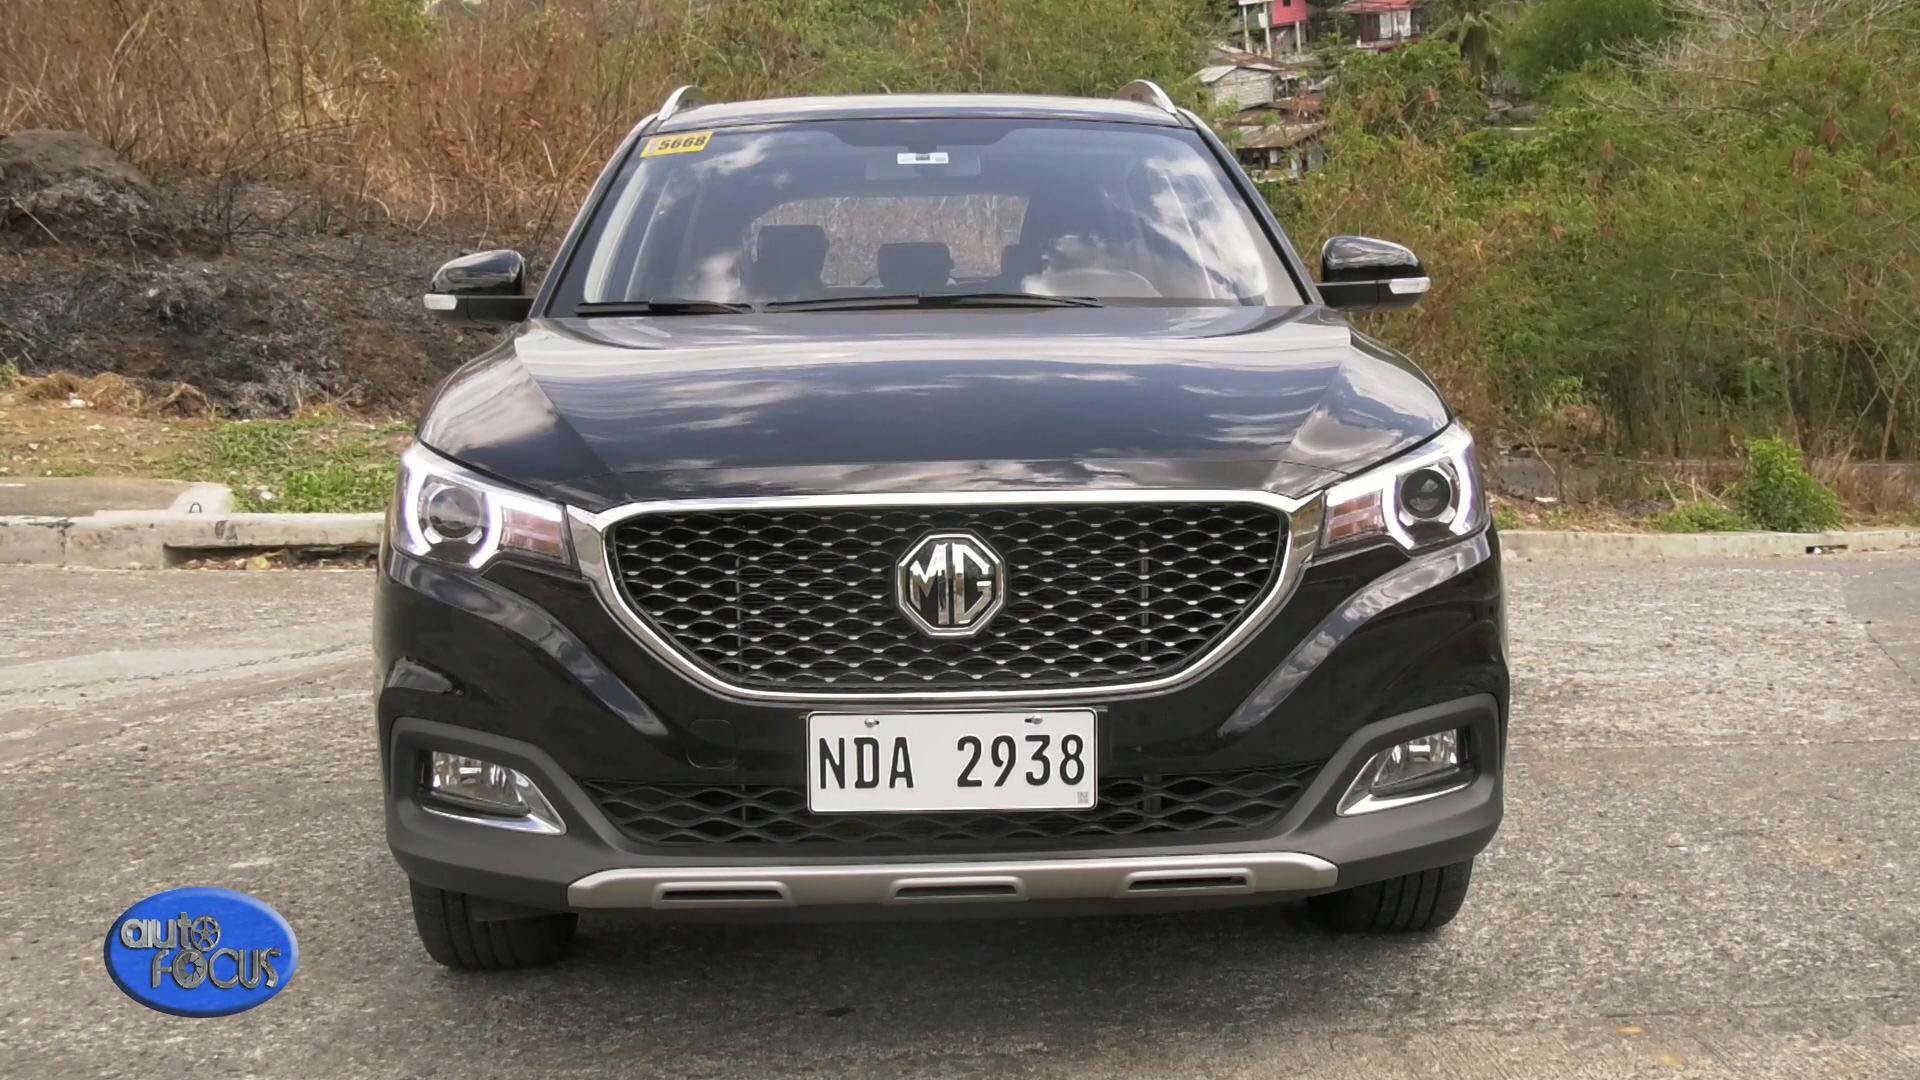 Mg zs 2019 review